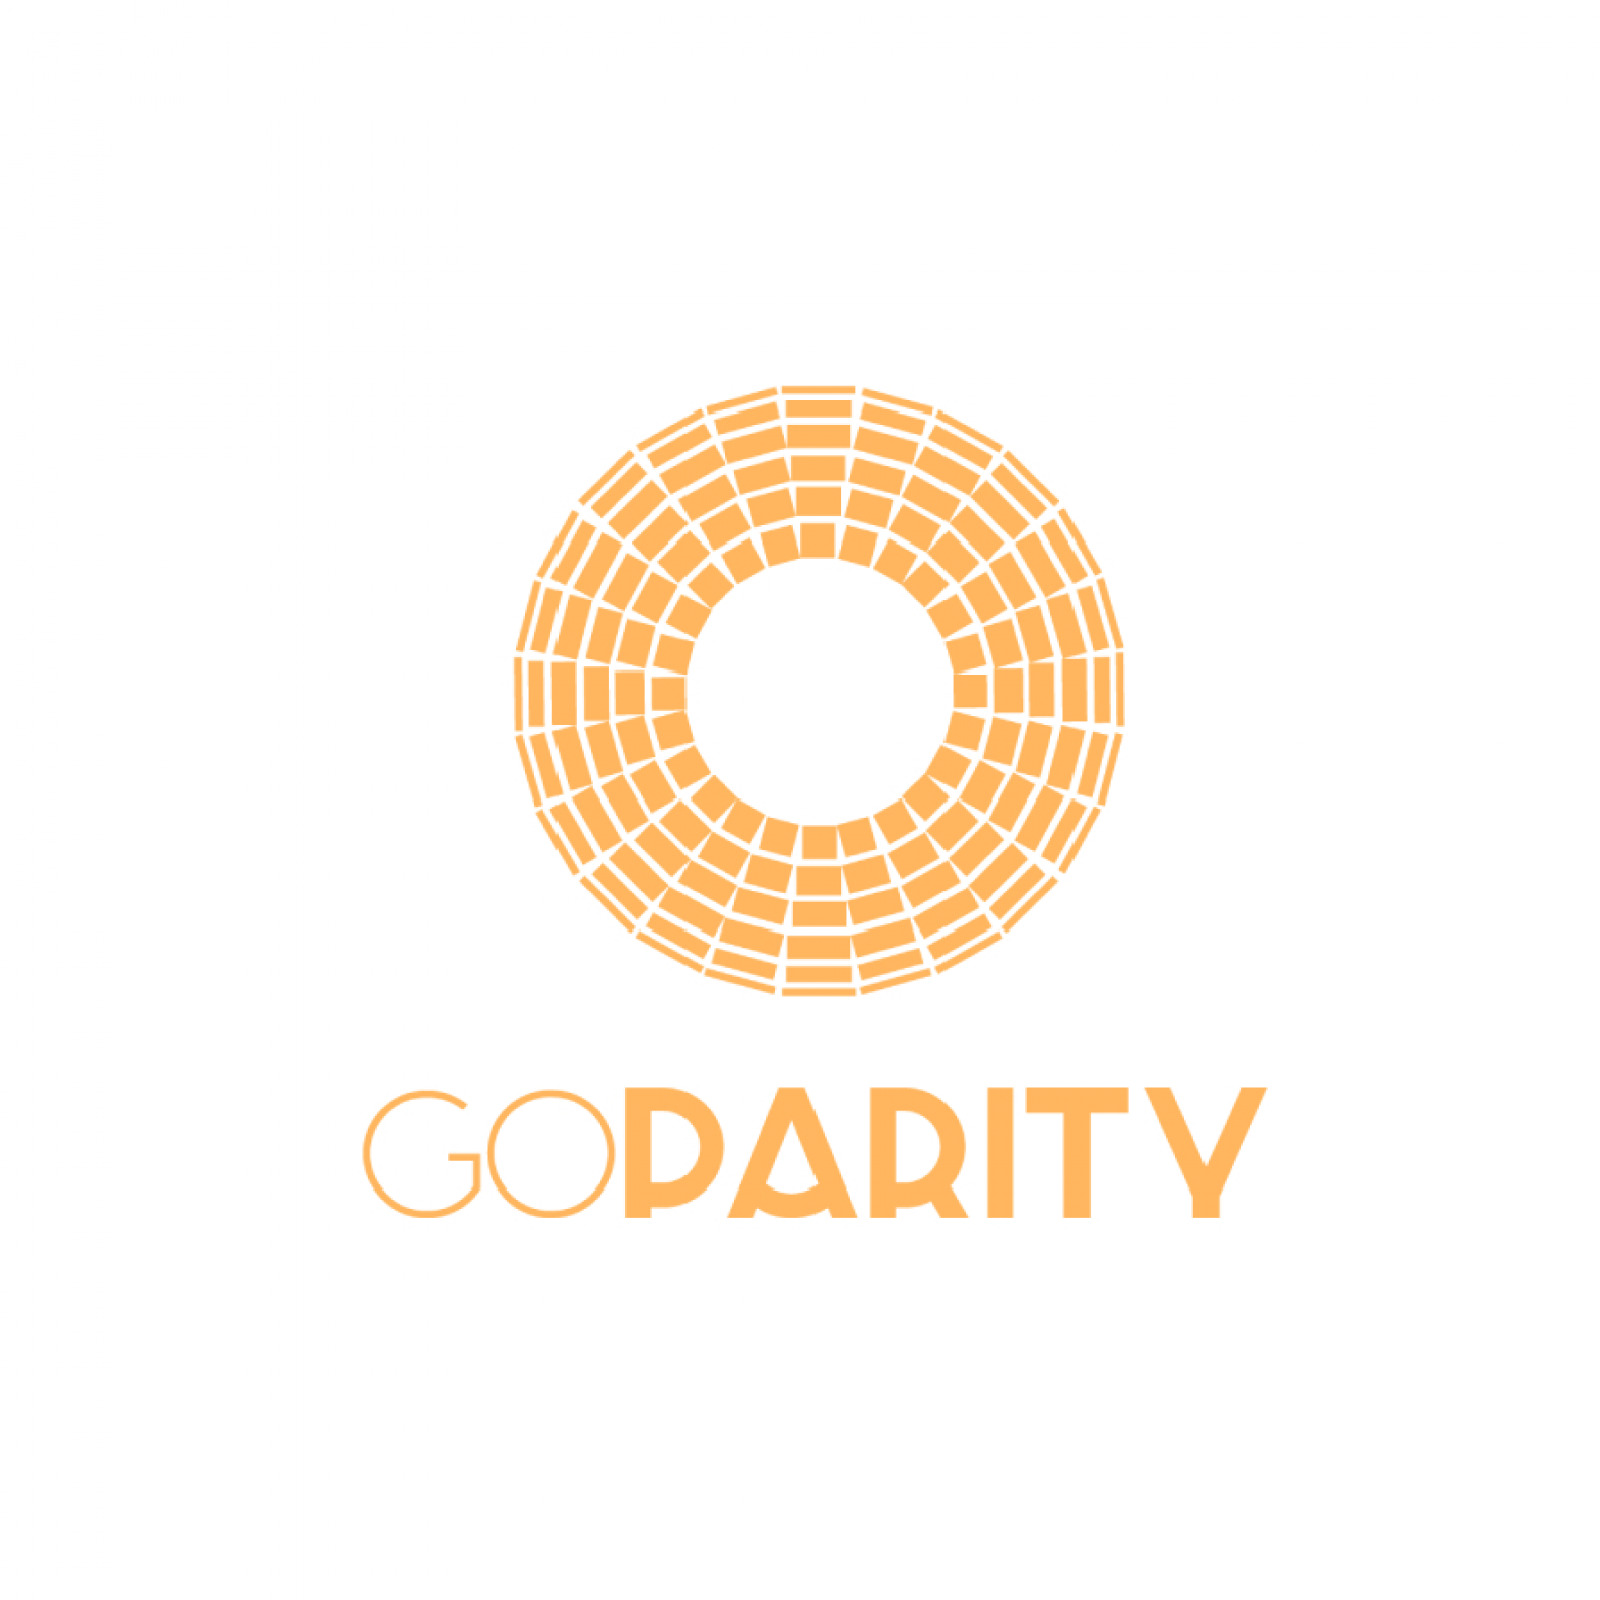 GoParity